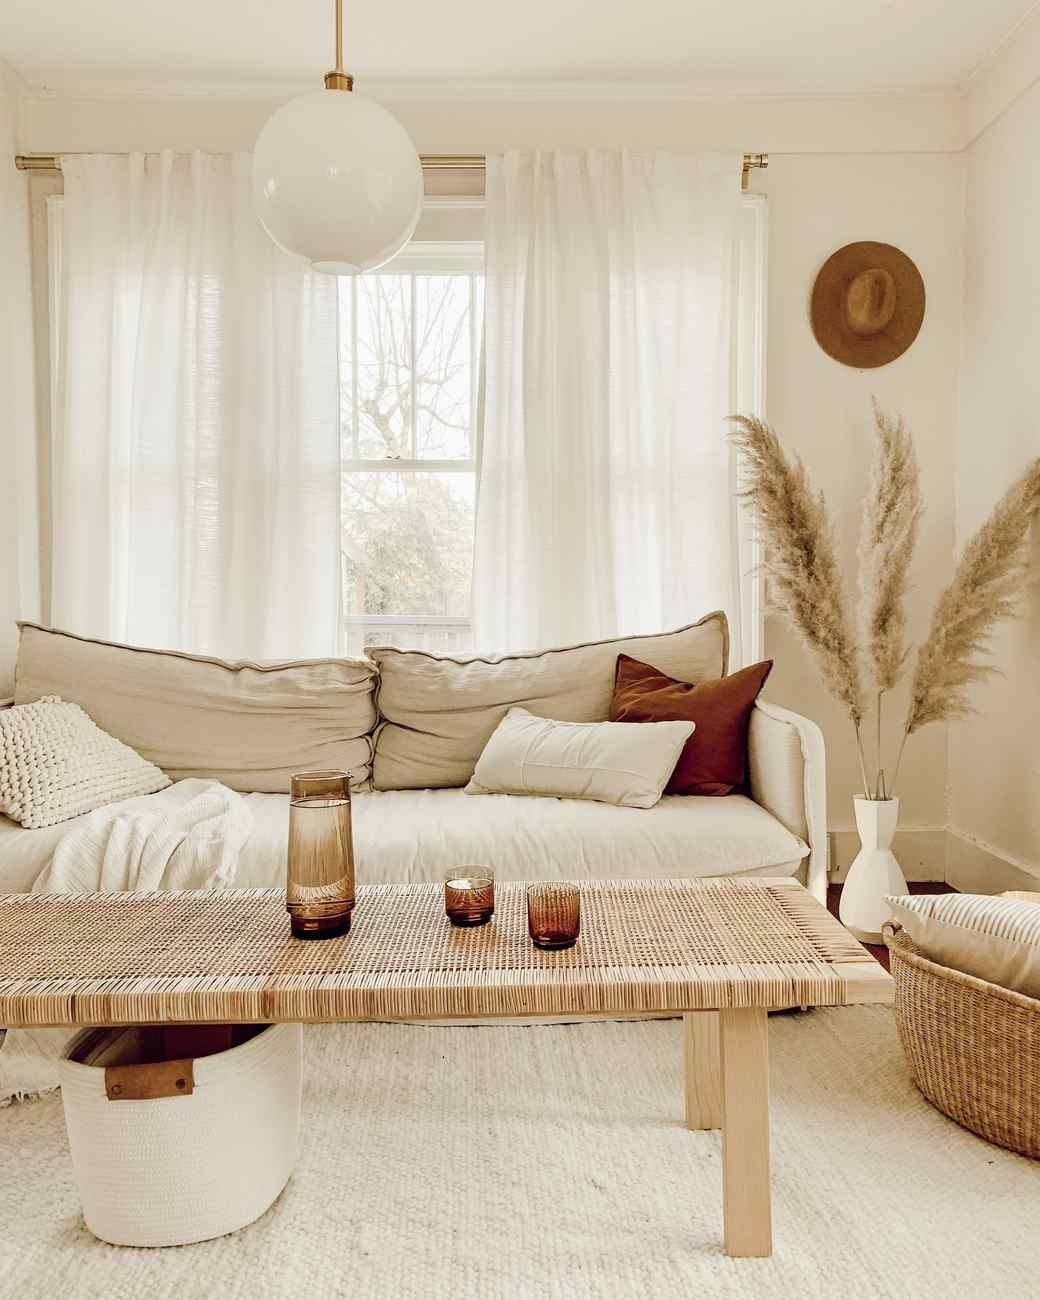 Spotlight On Fresh Ways To Decorate Your Space With Beige House Interior Boho Living Room Warm Home Decor #spotlight #in #living #room